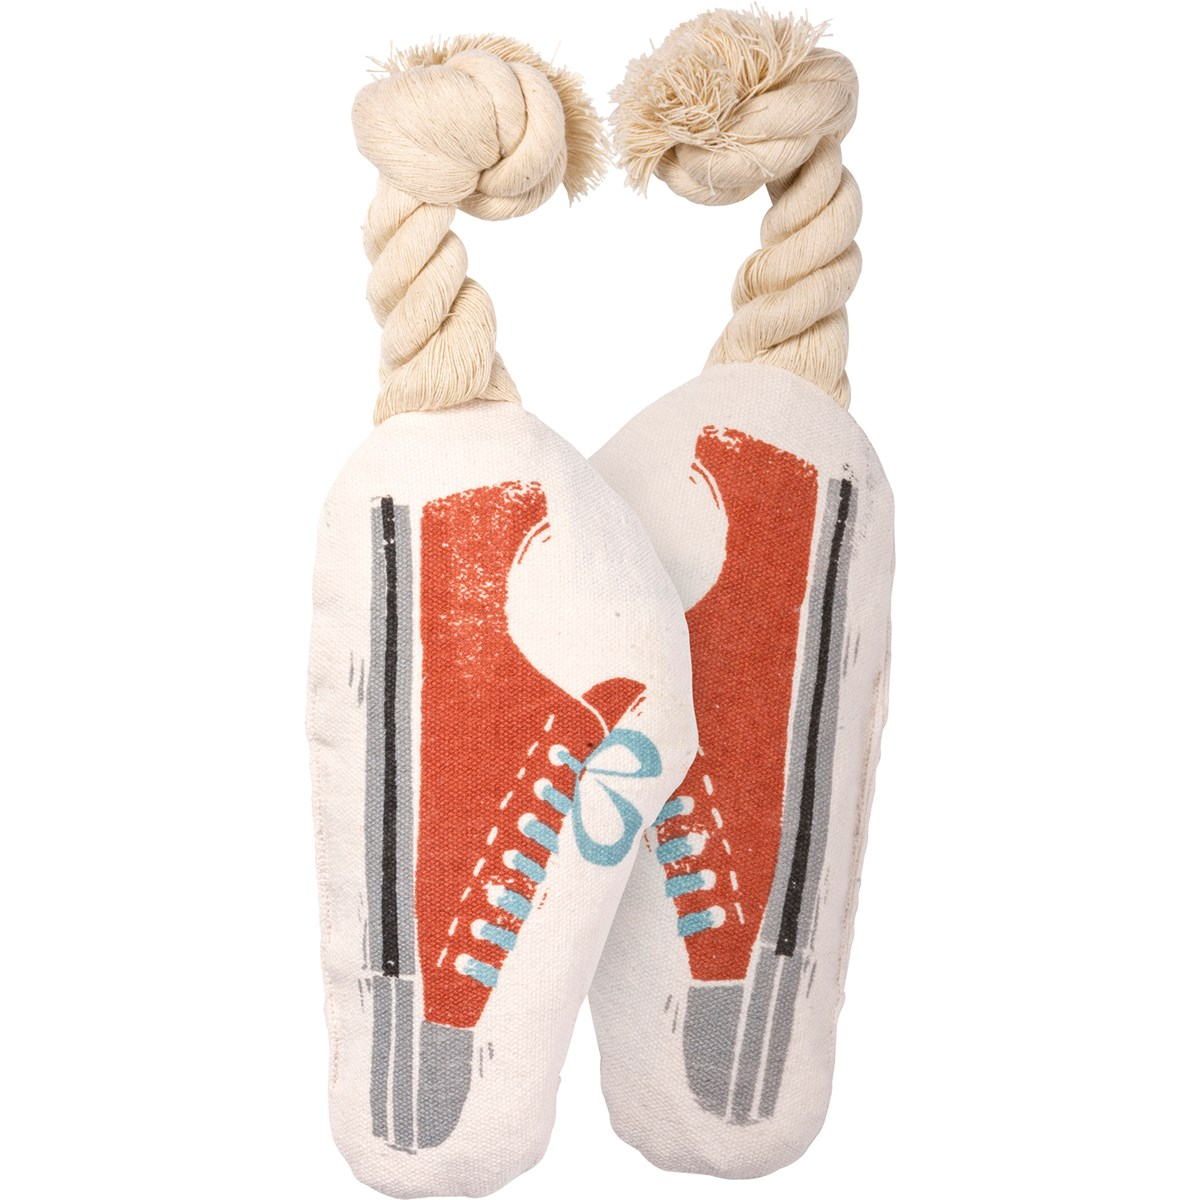 "Dog Toy - Sneaker - 3.75"" x 7.25"" x 2"" - Canvas, Rope"